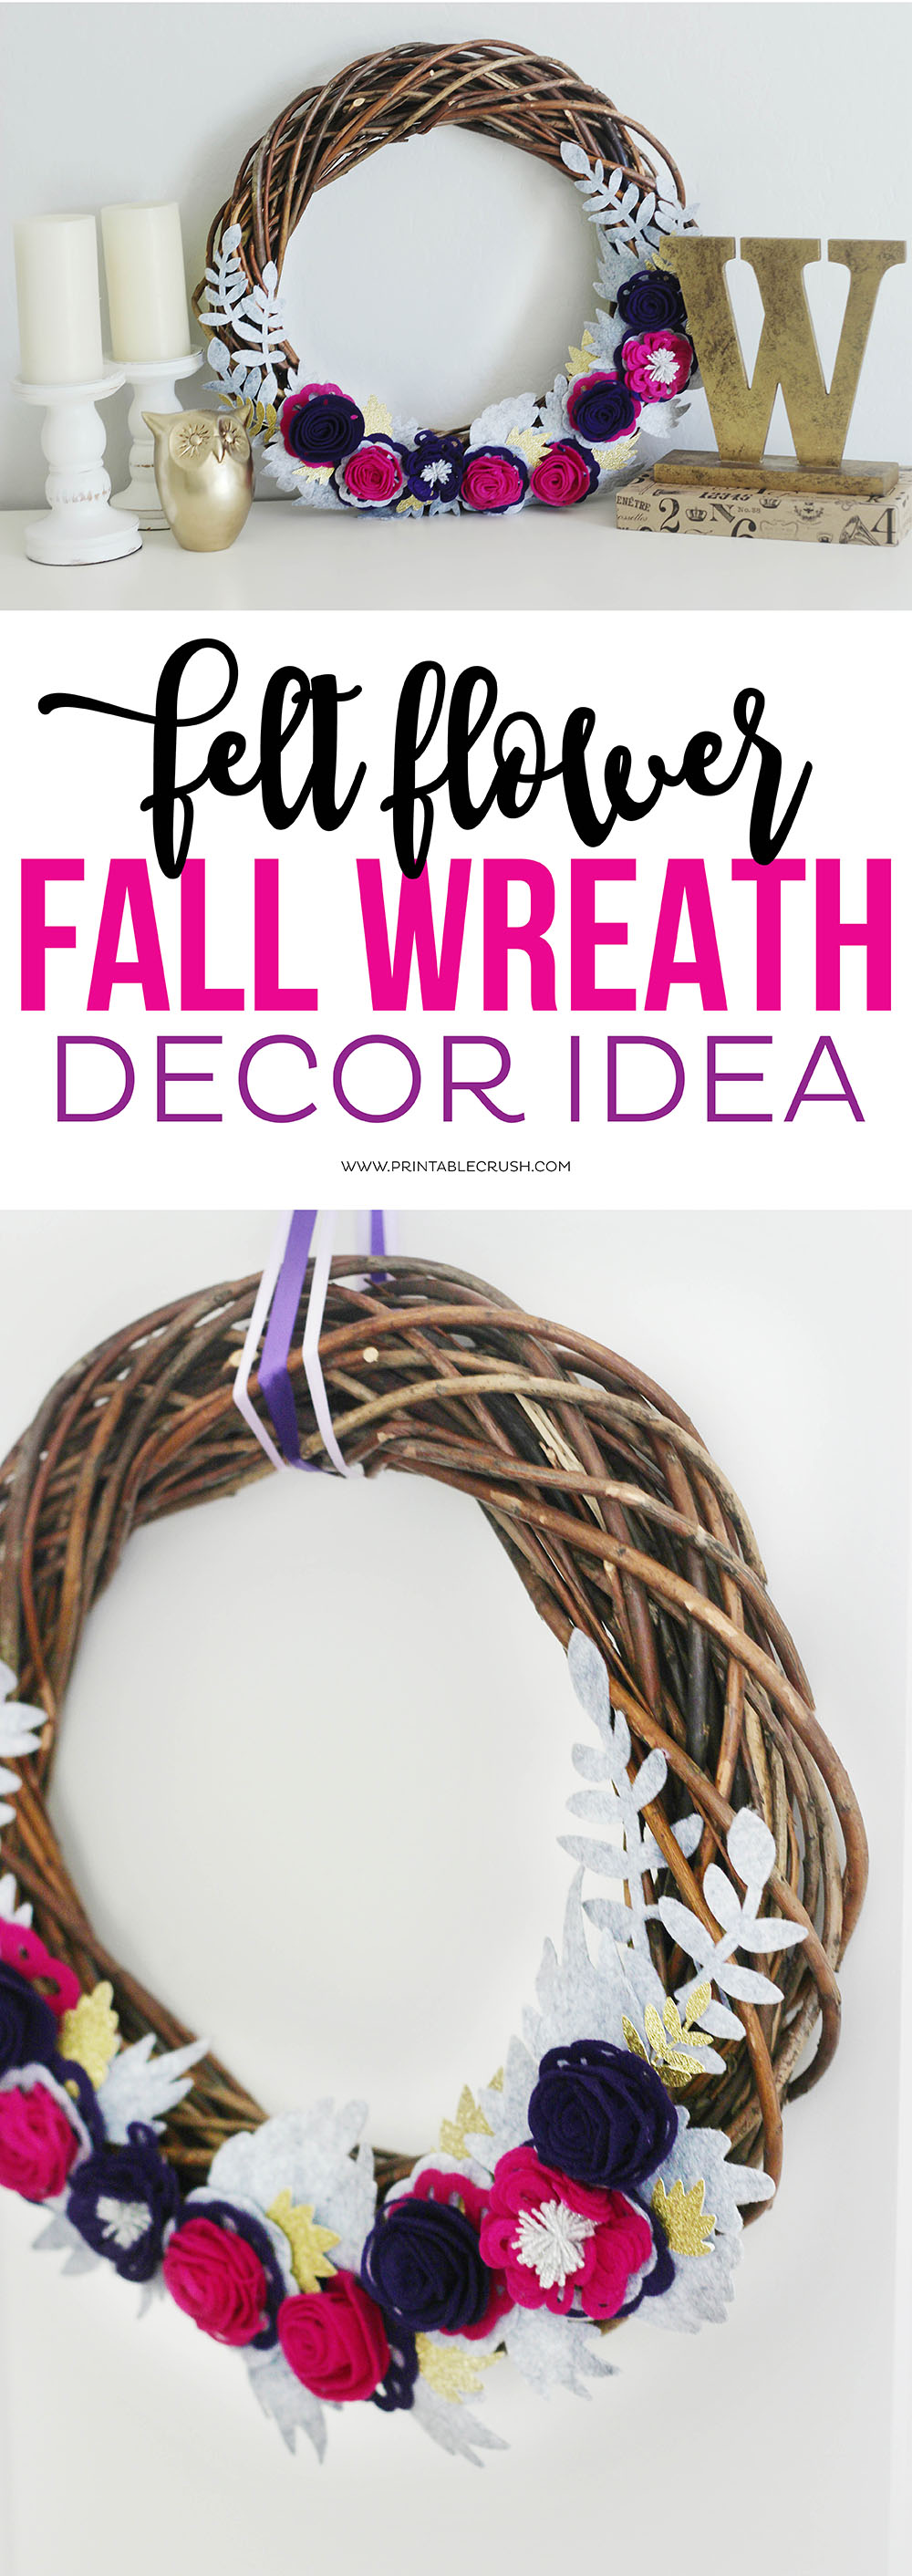 This gorgeous Felt Flower Fall Wreath Decor Idea looks like it was a ton of work, but it's incredibly easy to make! Great for Fall mantel decor! #cricutmaker #feltroses #diywreath #diyfallwreath #sayitwithcricut